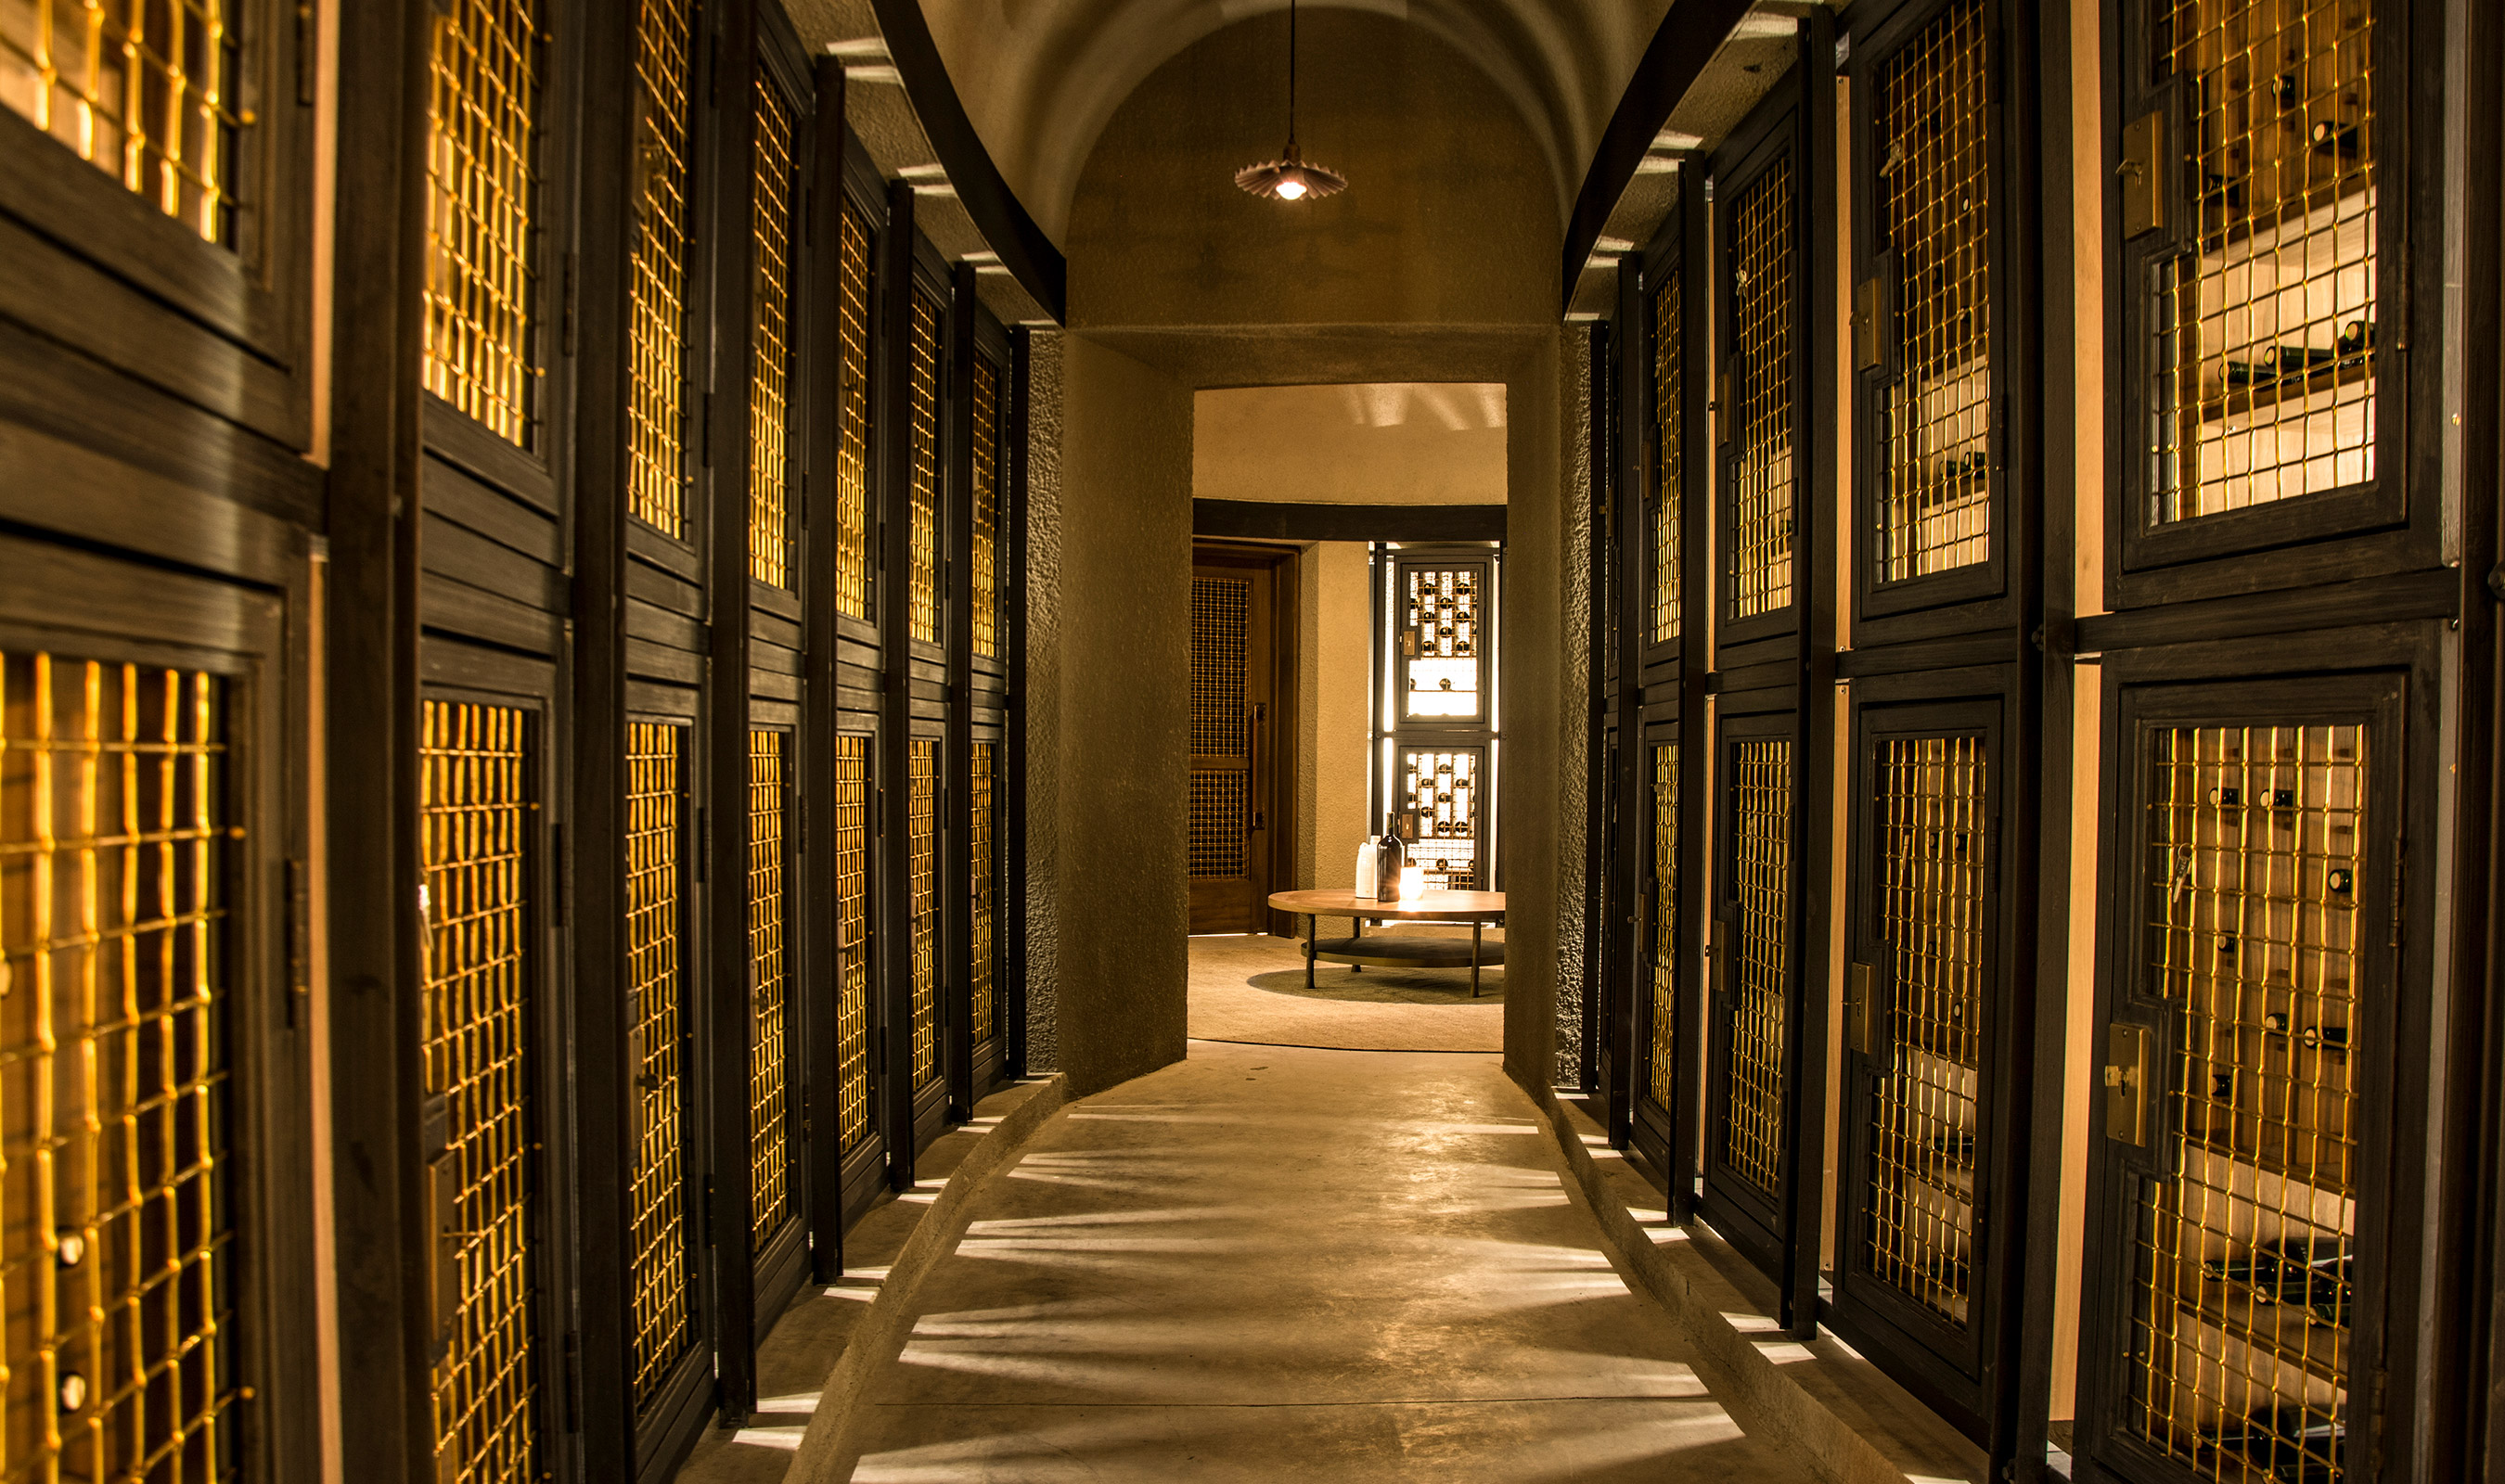 Bronze woven wire mesh integrated into wine lockers adds a warmth to the stone hallway.